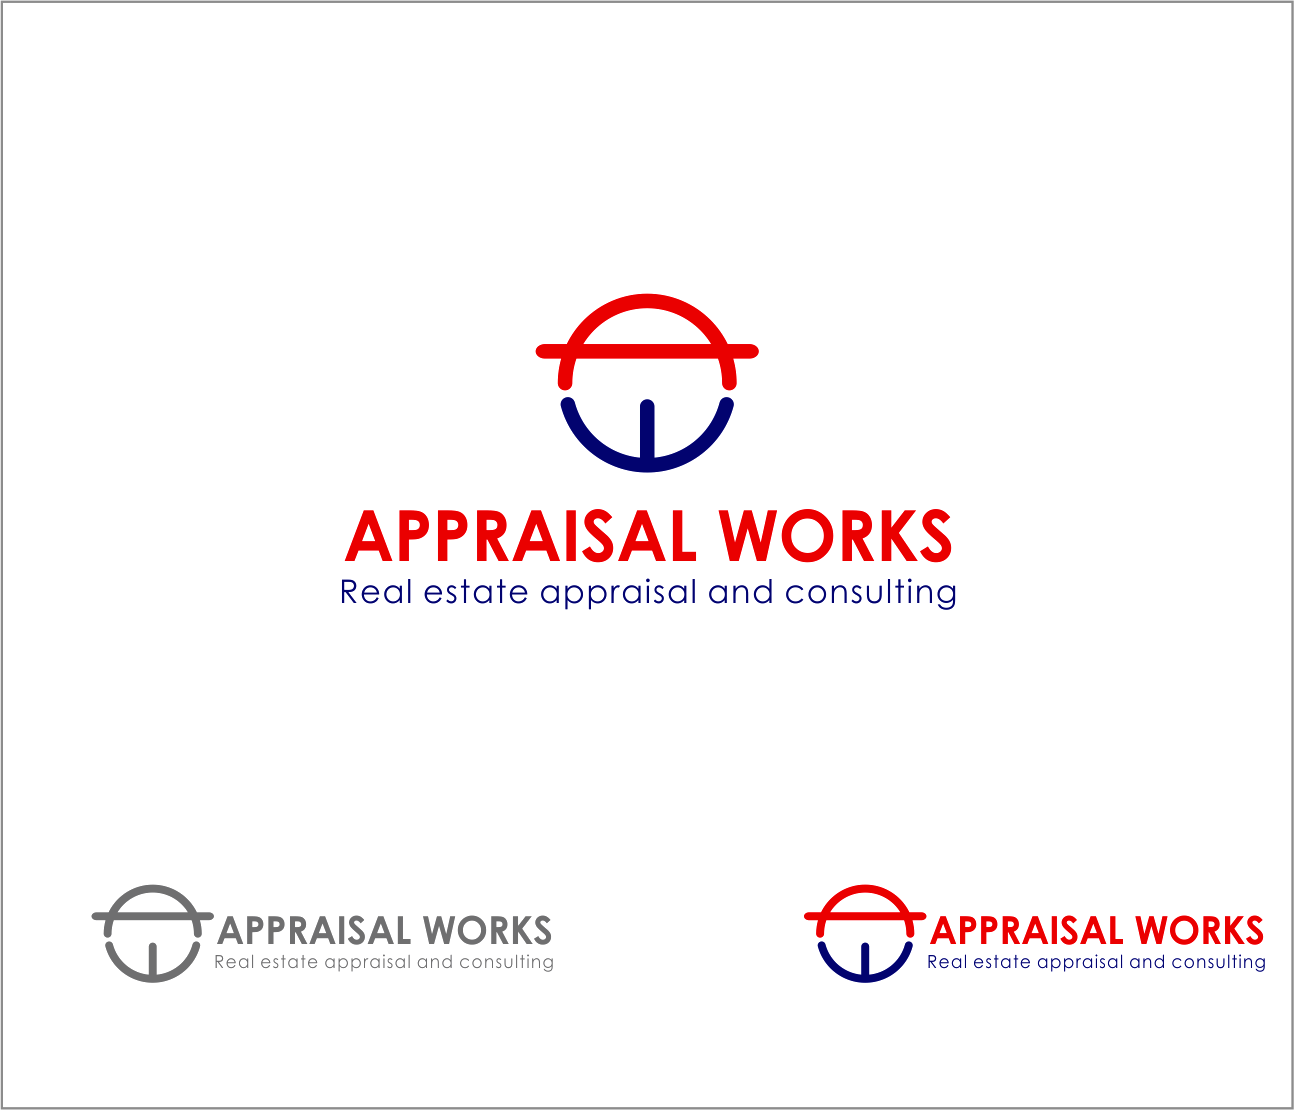 Logo Design by Armada Jamaluddin - Entry No. 167 in the Logo Design Contest Appraisal Works Logo Design.